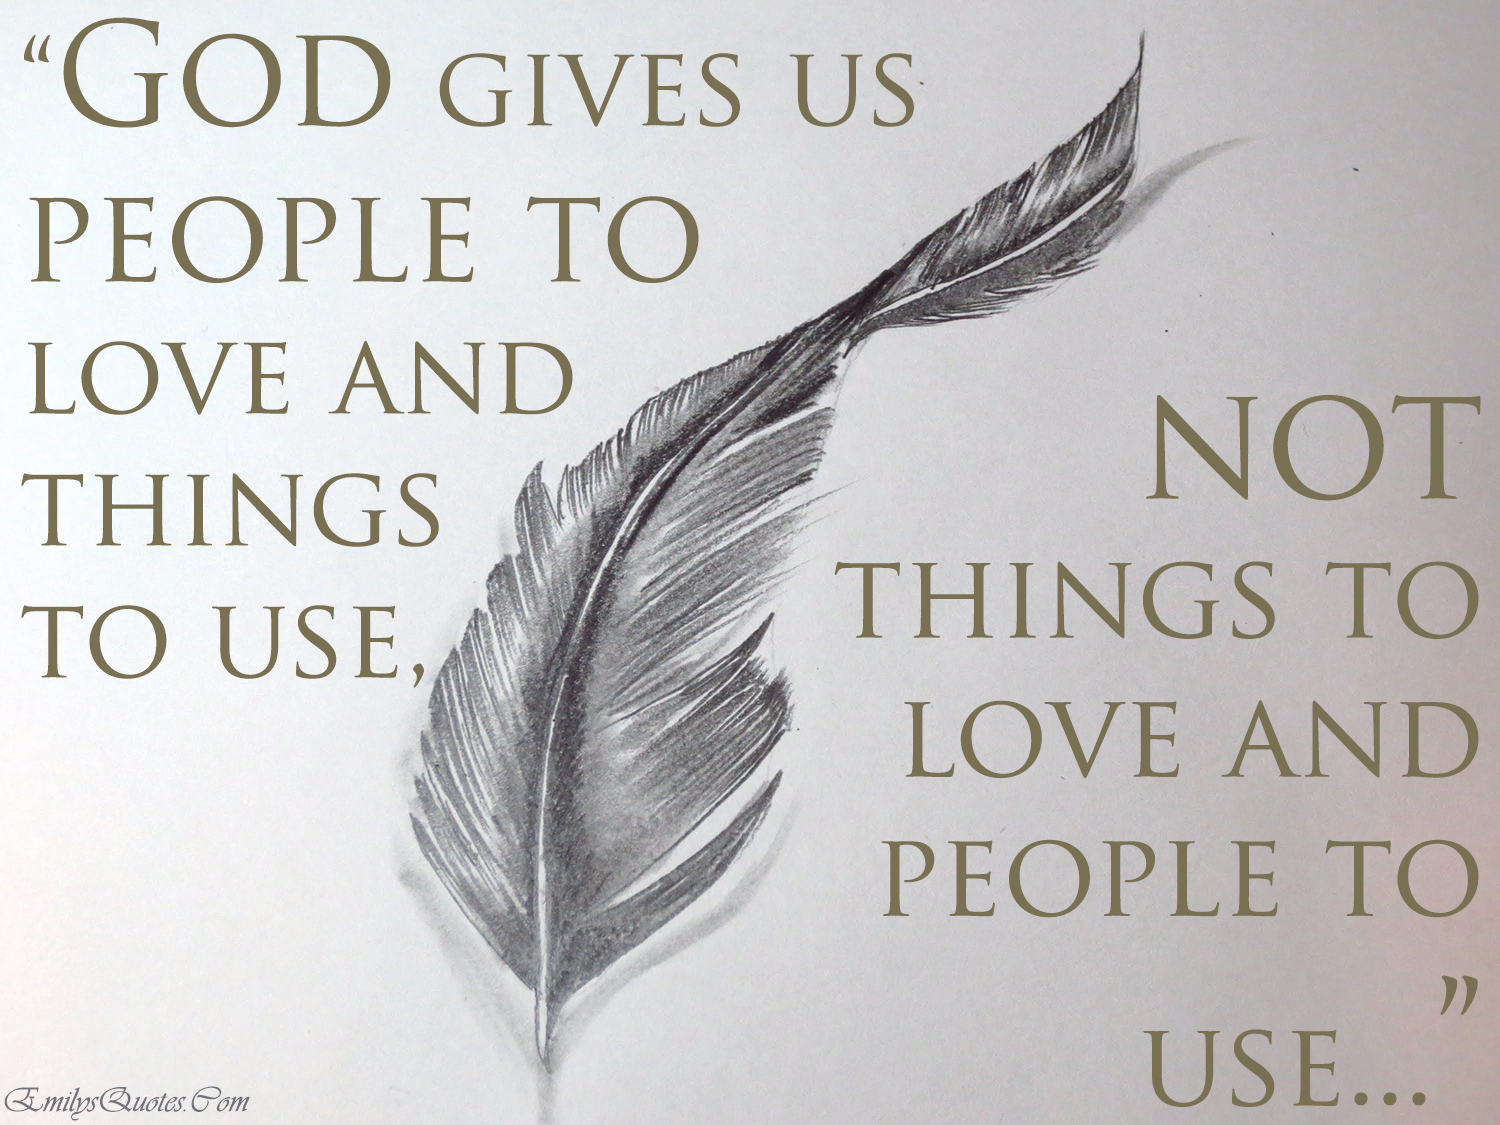 Love Quotes For Us God Gives Us People To Love And Things To Use Not Things To Love